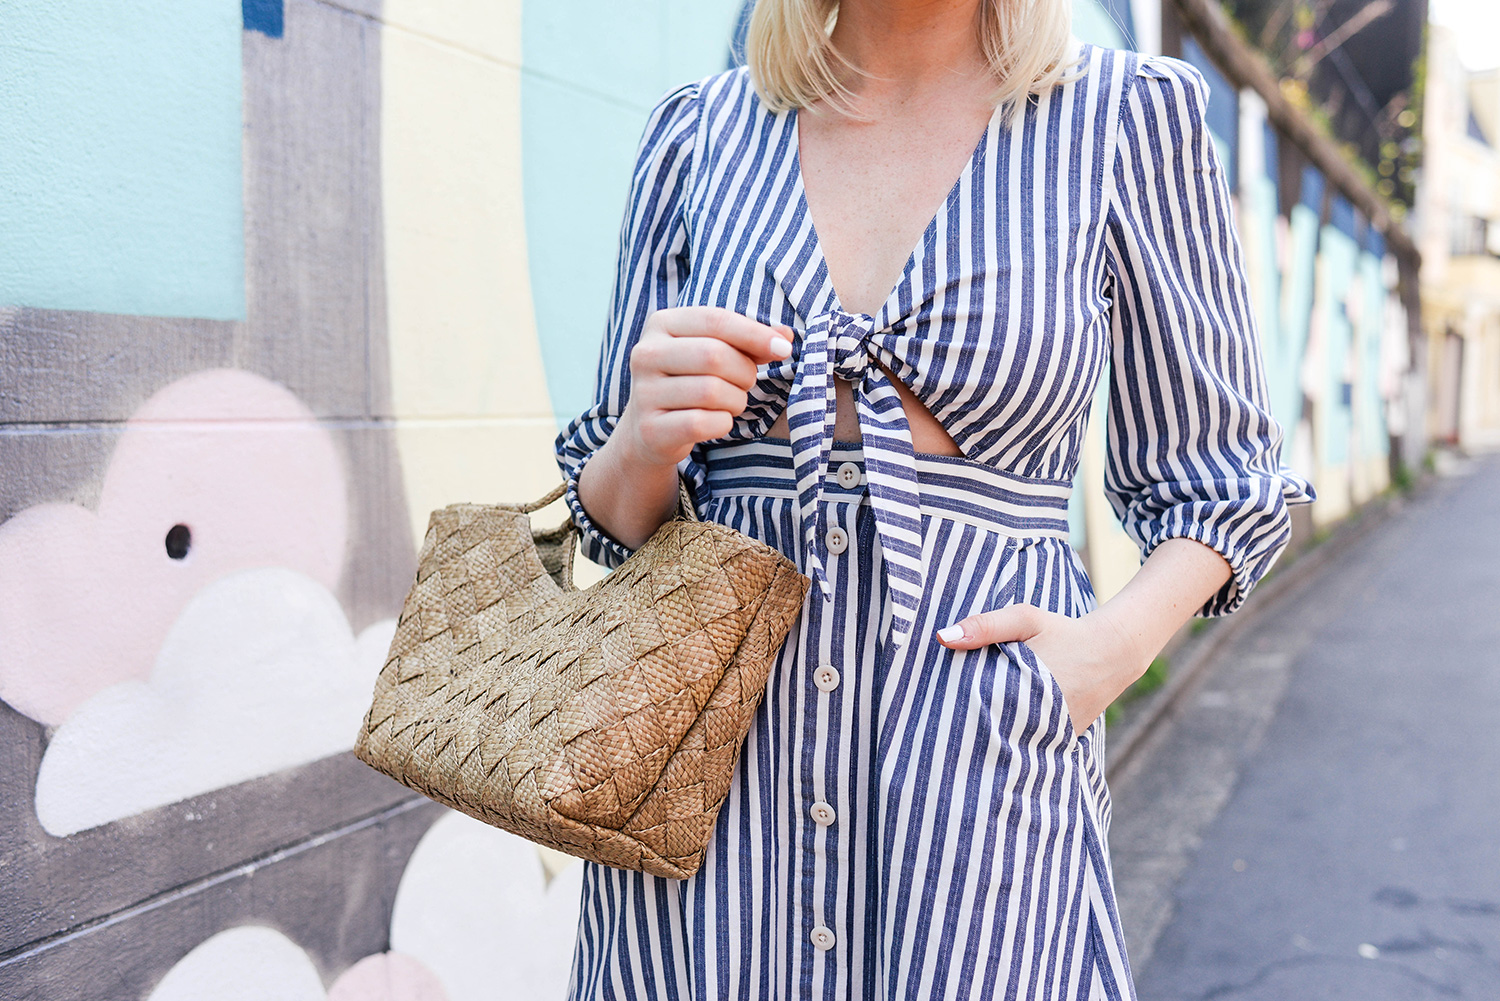 Madewell Shimmer Stripe Midi Dress in Tokyo, Japan | Merritt Beck